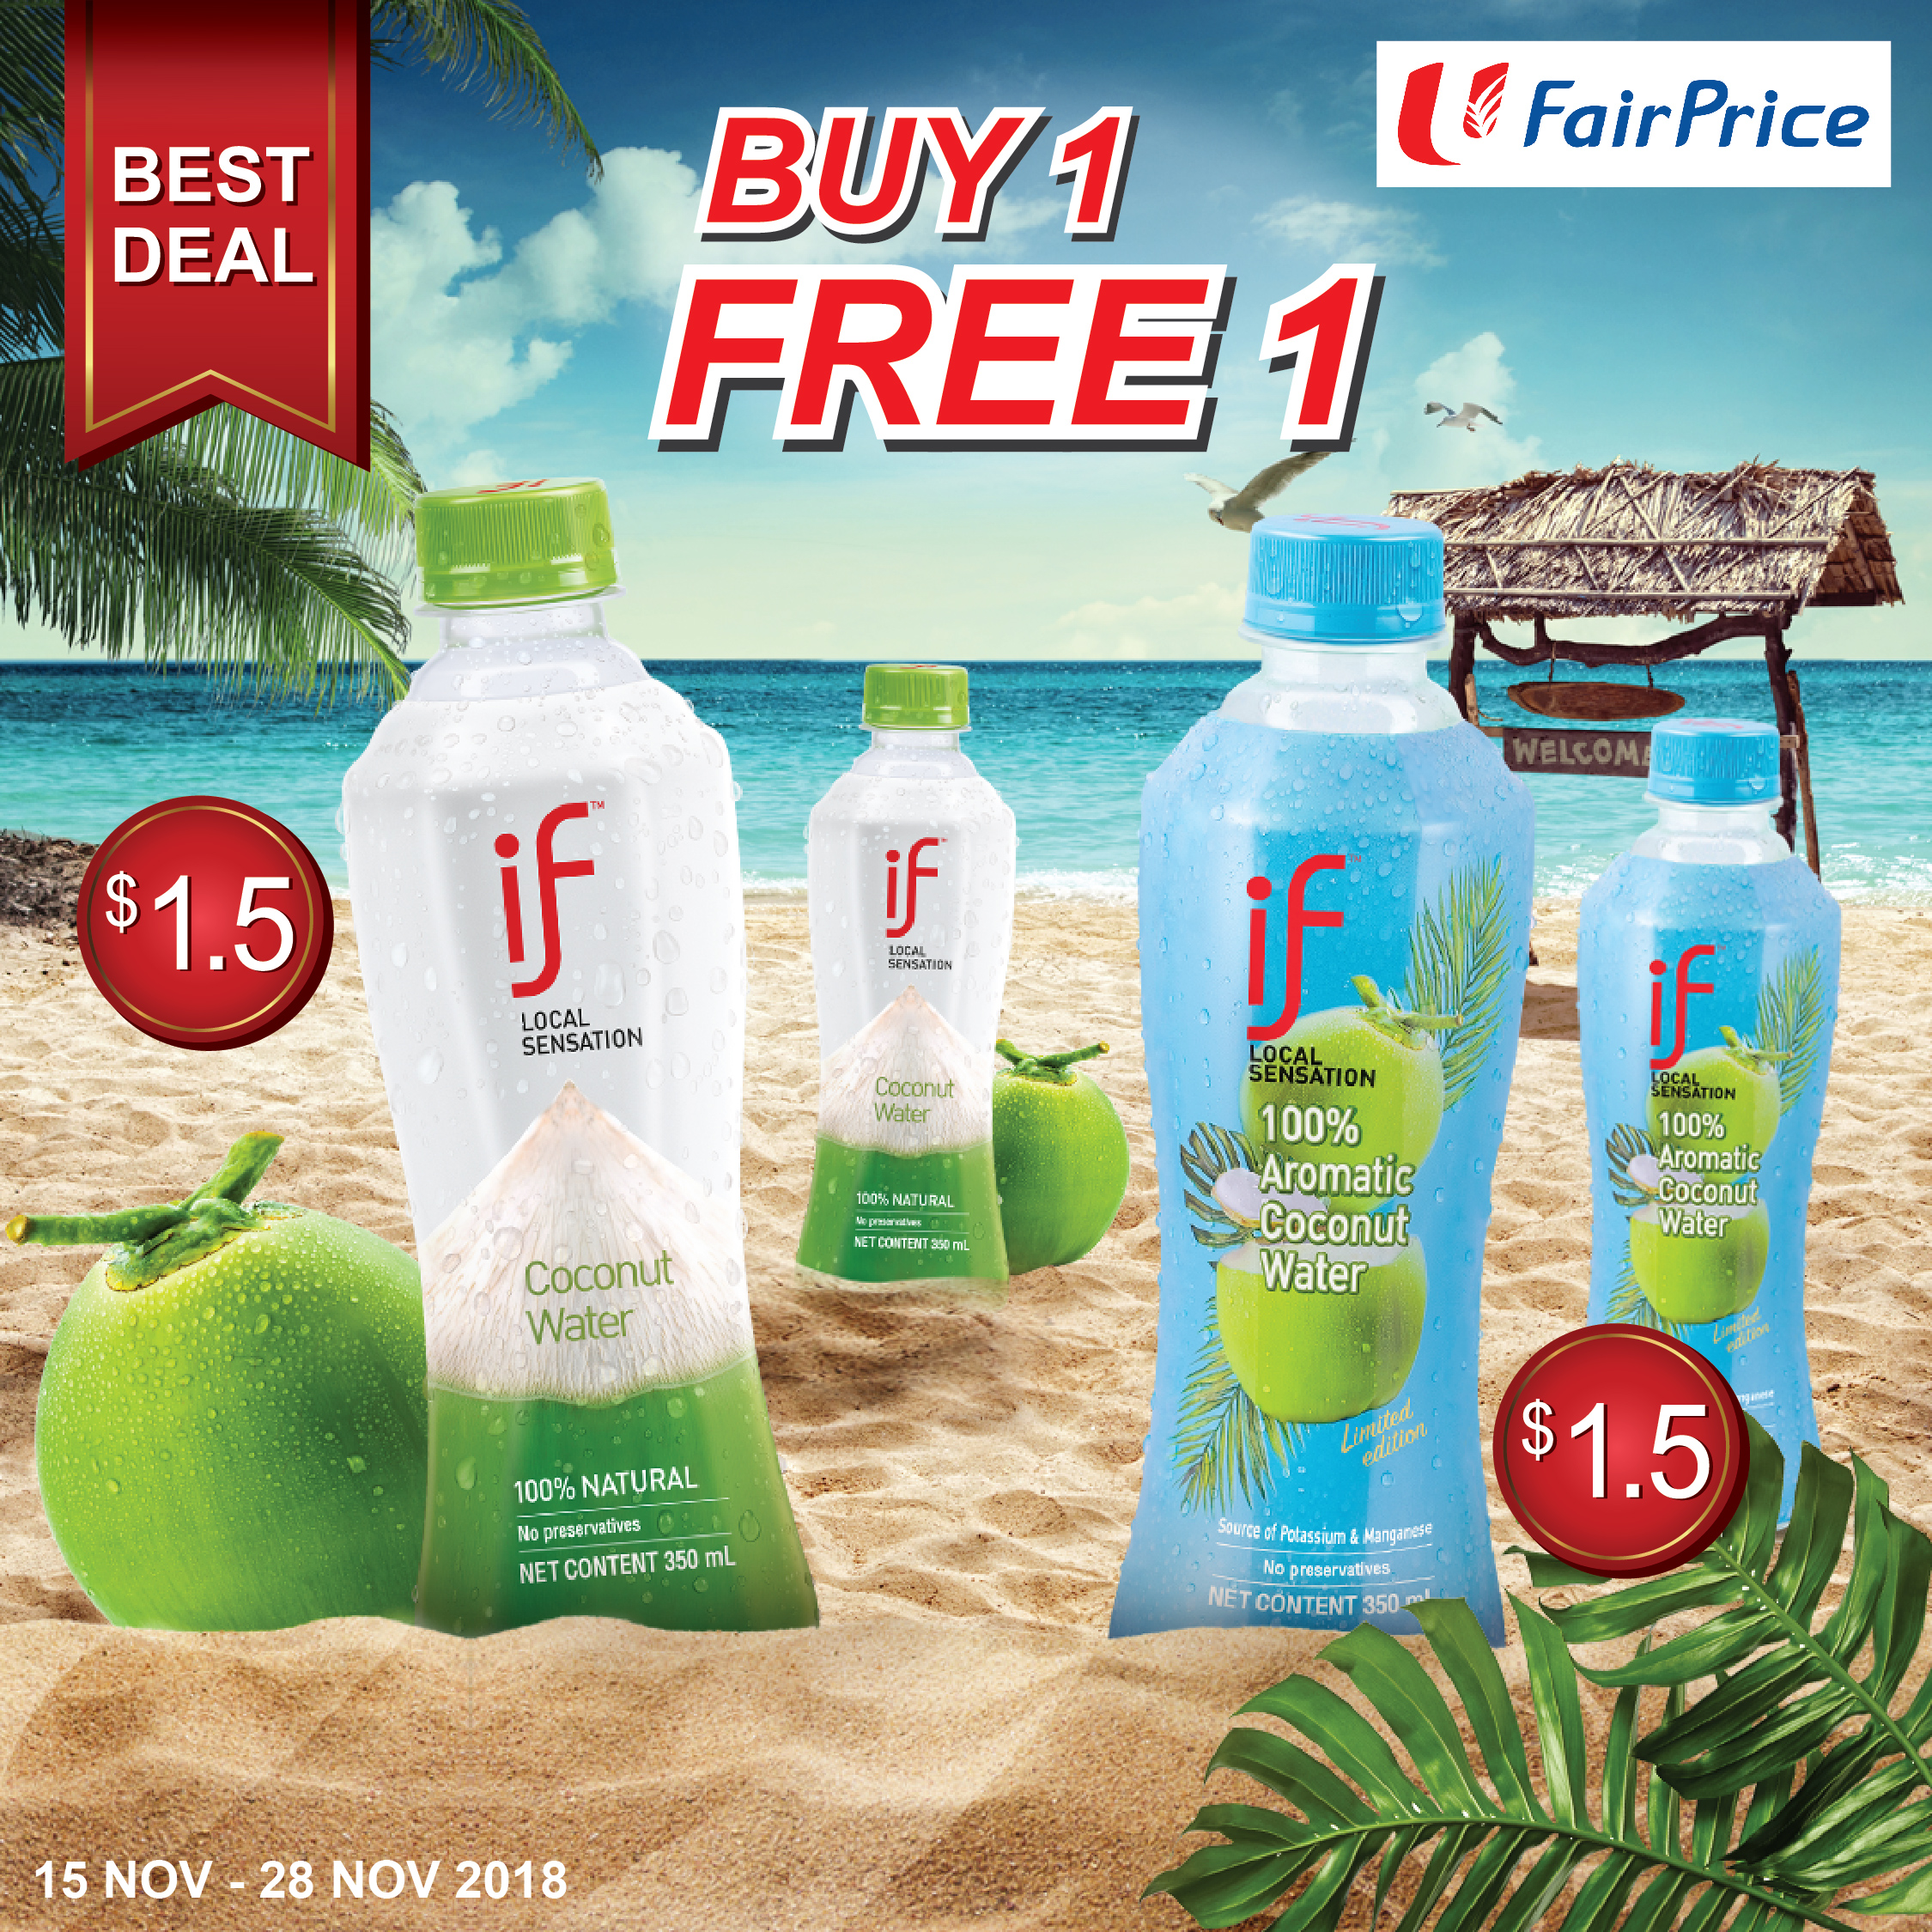 [Fairprice] IF Local Sensation BUY 1 FREE 1